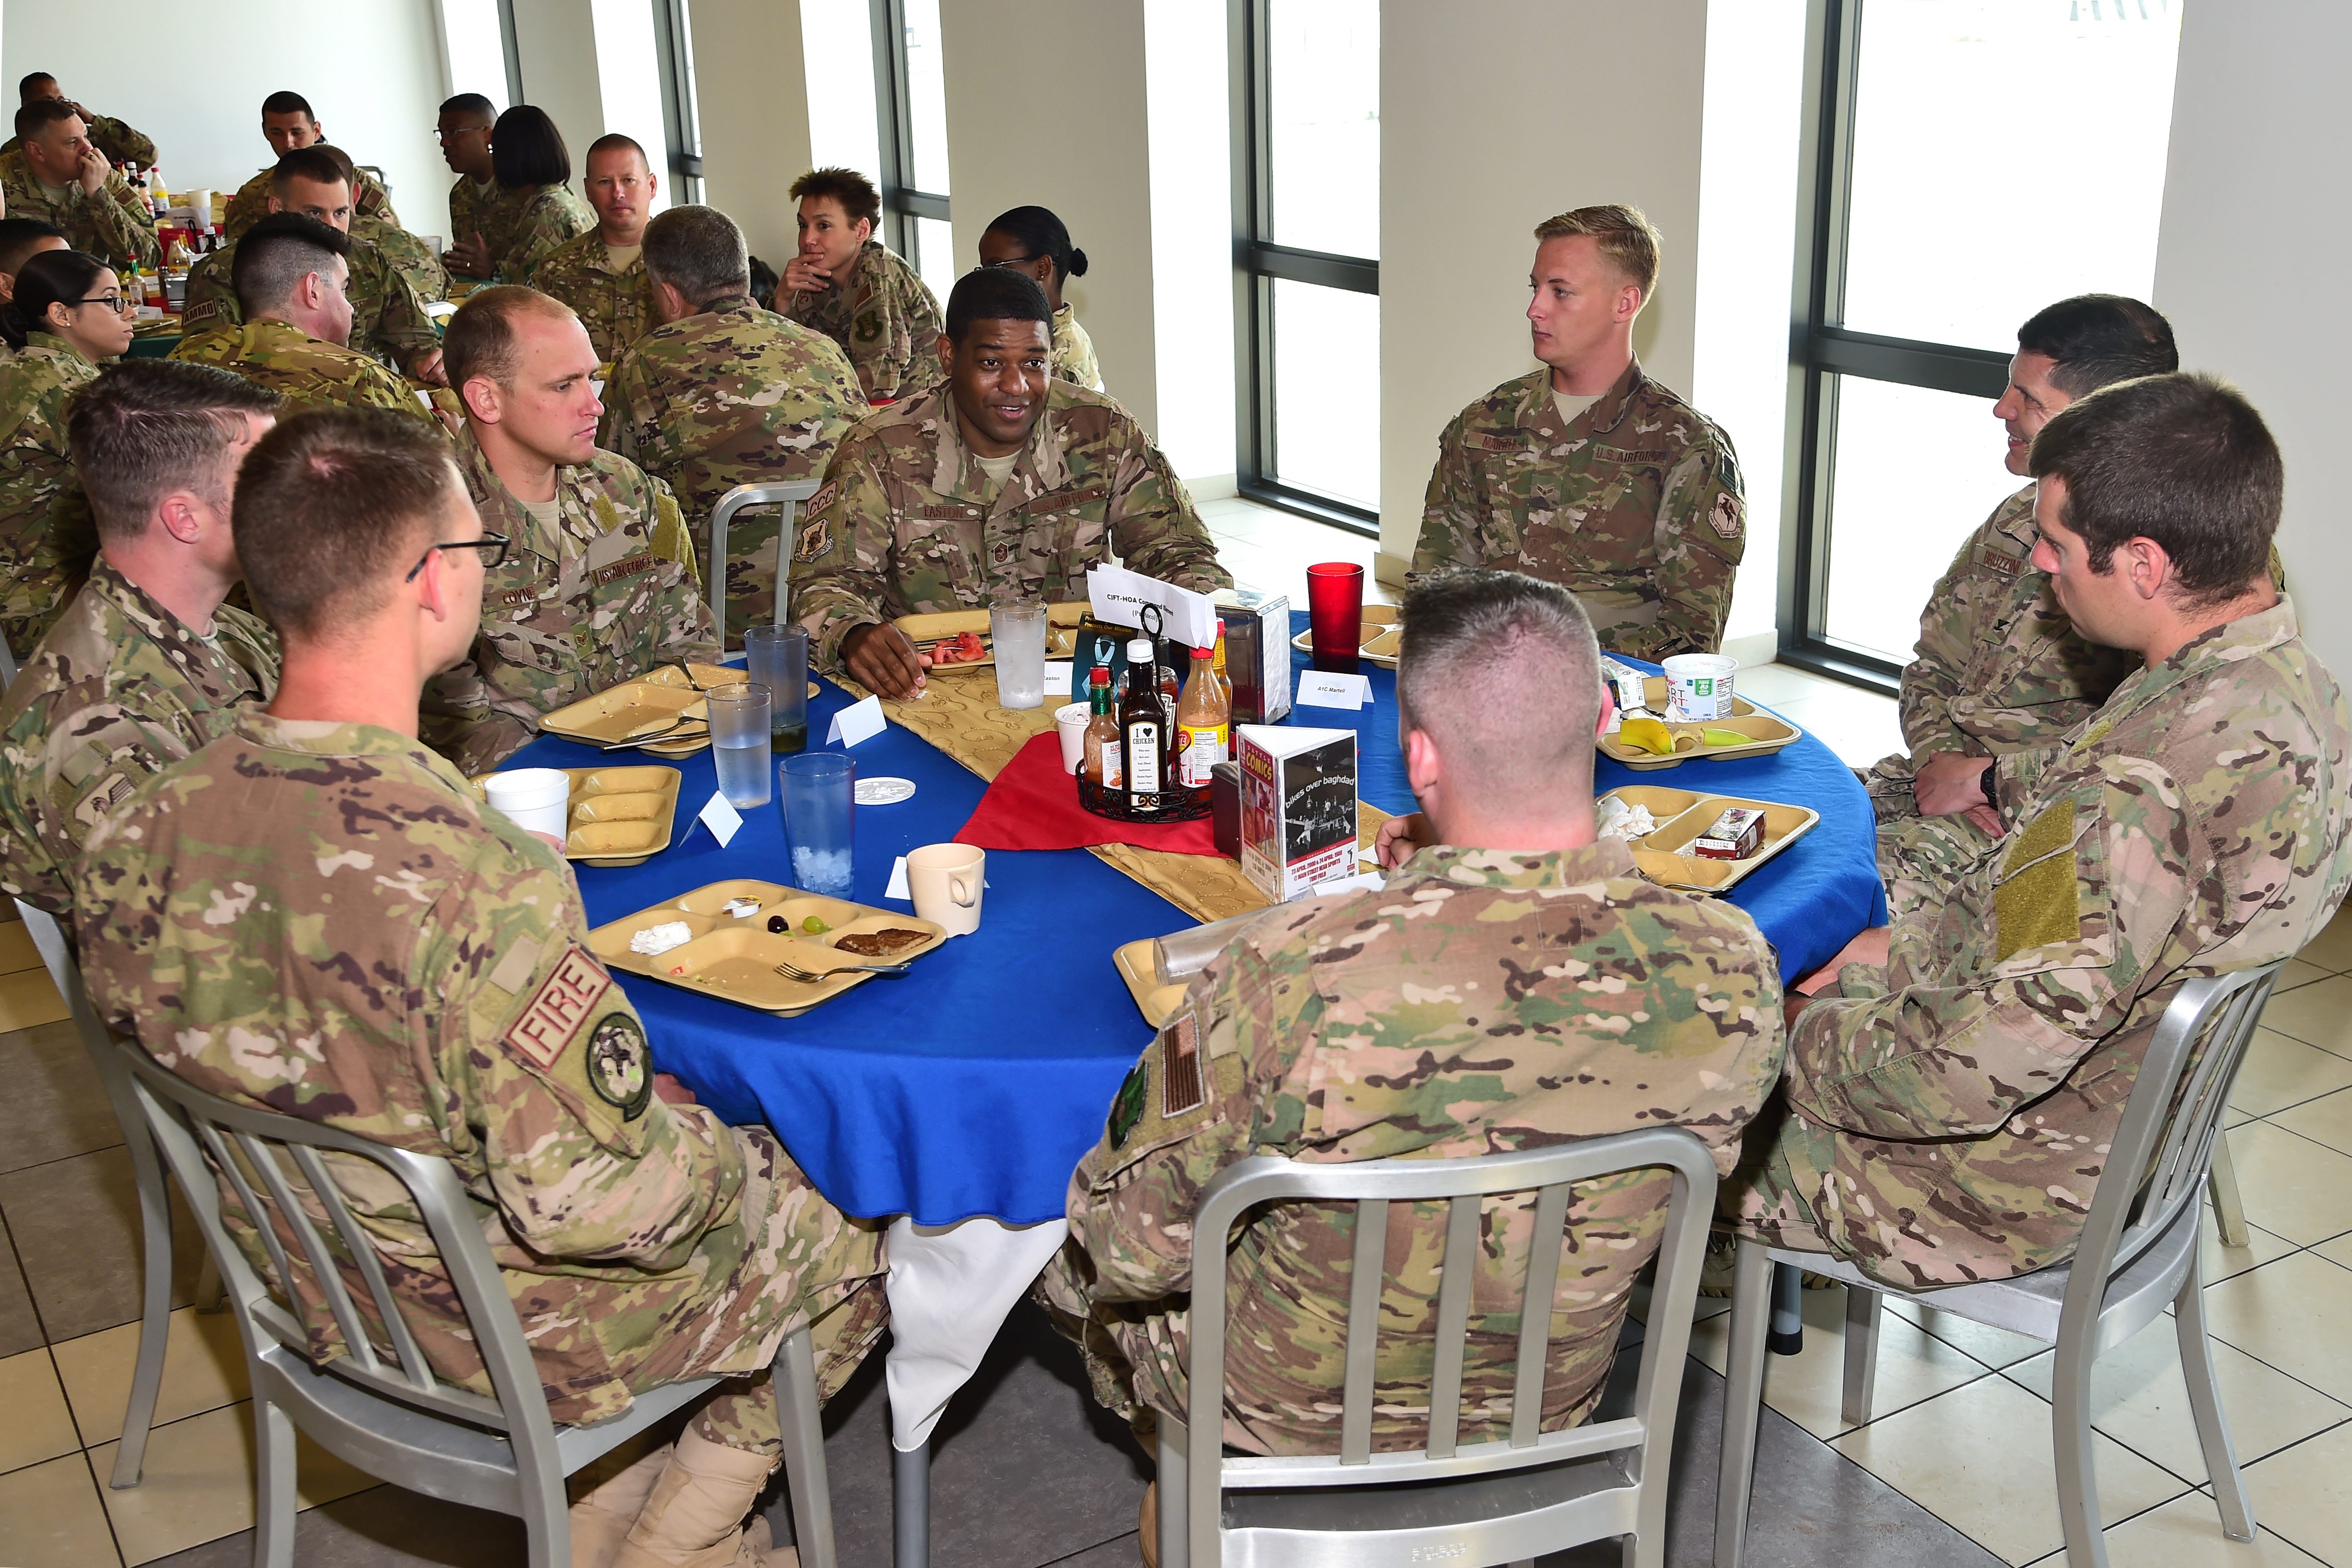 Chief Master Sgt. Phillip Easton, U.S. Air Forces Europe and U.S. Air Forces Africa command chief, engages with active, reserve and National Guard Airmen over breakfast at Camp Lemonnier, Djibouti April 12, 2017. Easton accompanied Lt. Gen. Richard Clark, commander of the 3rd Air Force and 17th Expeditionary Air Force on a visit with deployed Airmen, to gain a better understanding of the Air Force mission in East Africa, and express their appreciation to the many U.S. Airmen deployed throughout the region. (U.S. Air National Guard photo by Master Sgt. Paul Gorman)